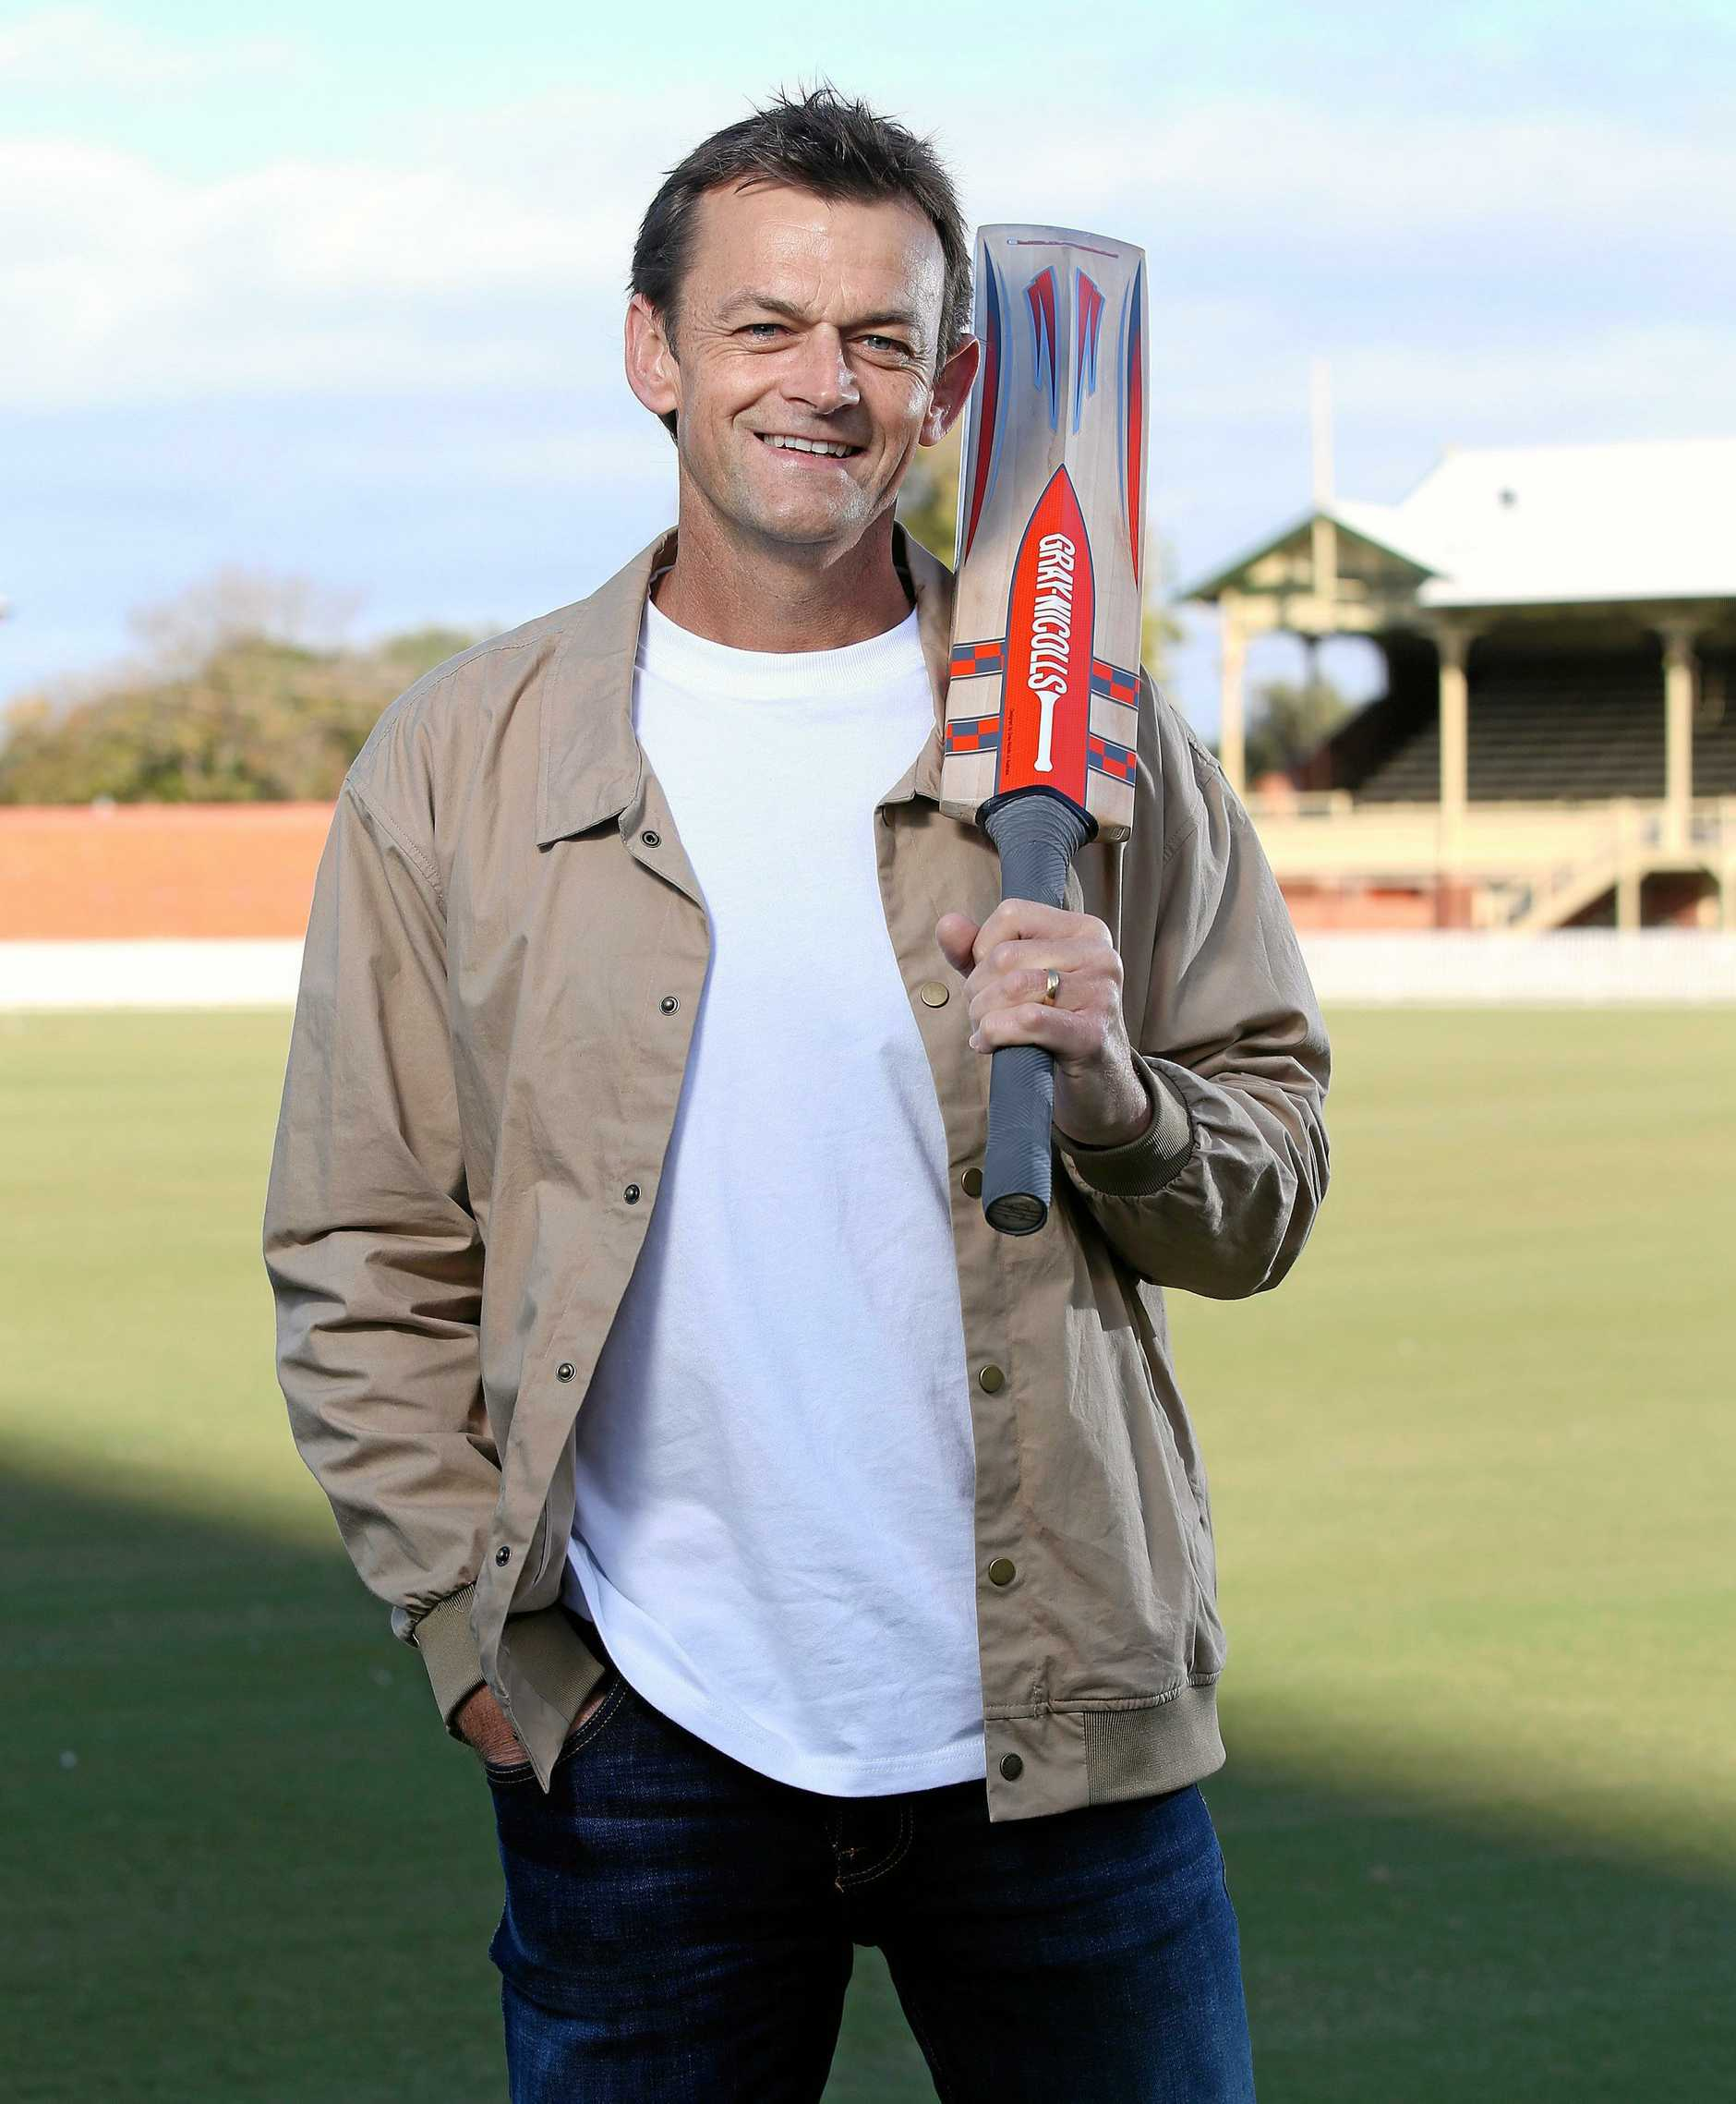 *WARNING EMBARGOED for the November 15 cover of The Guide* Adam Gilchrist returns as part of the Fox Cricket commentary team.